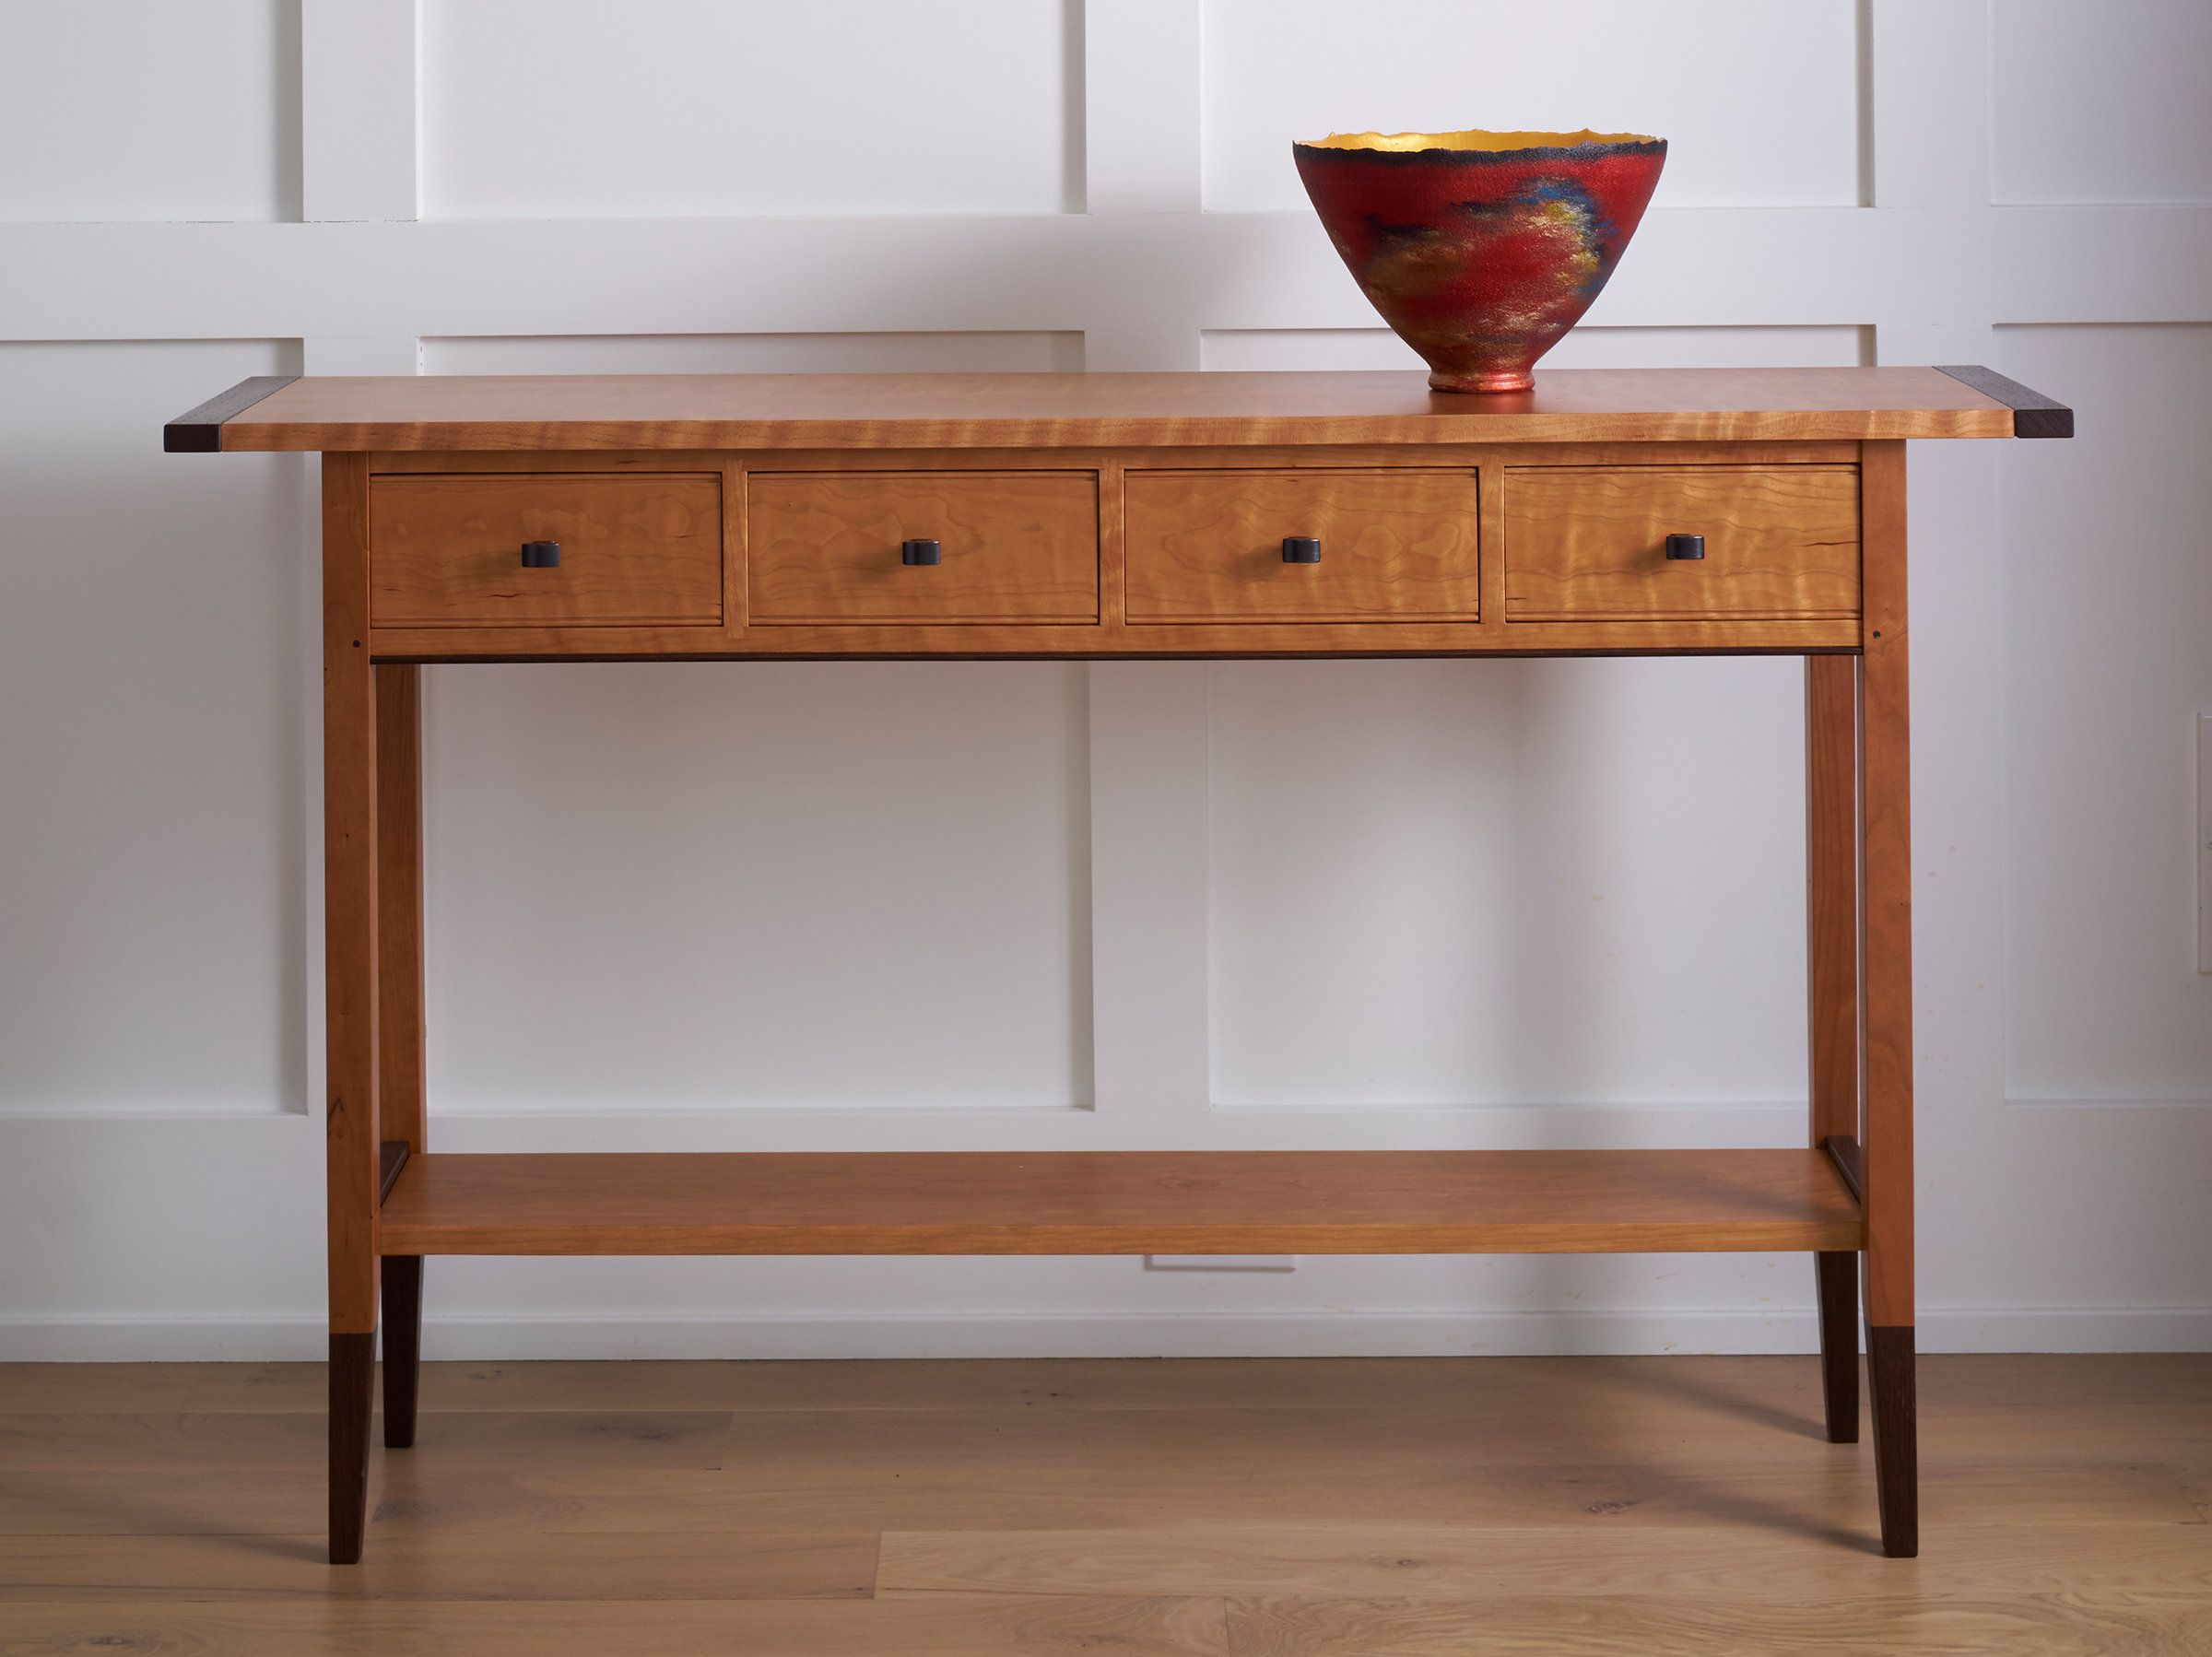 Solid Cherry Table By Tom Dumke Wood Console Table Artful Home In 2020 Wood Console Table Wood Console Entryway Table Decor